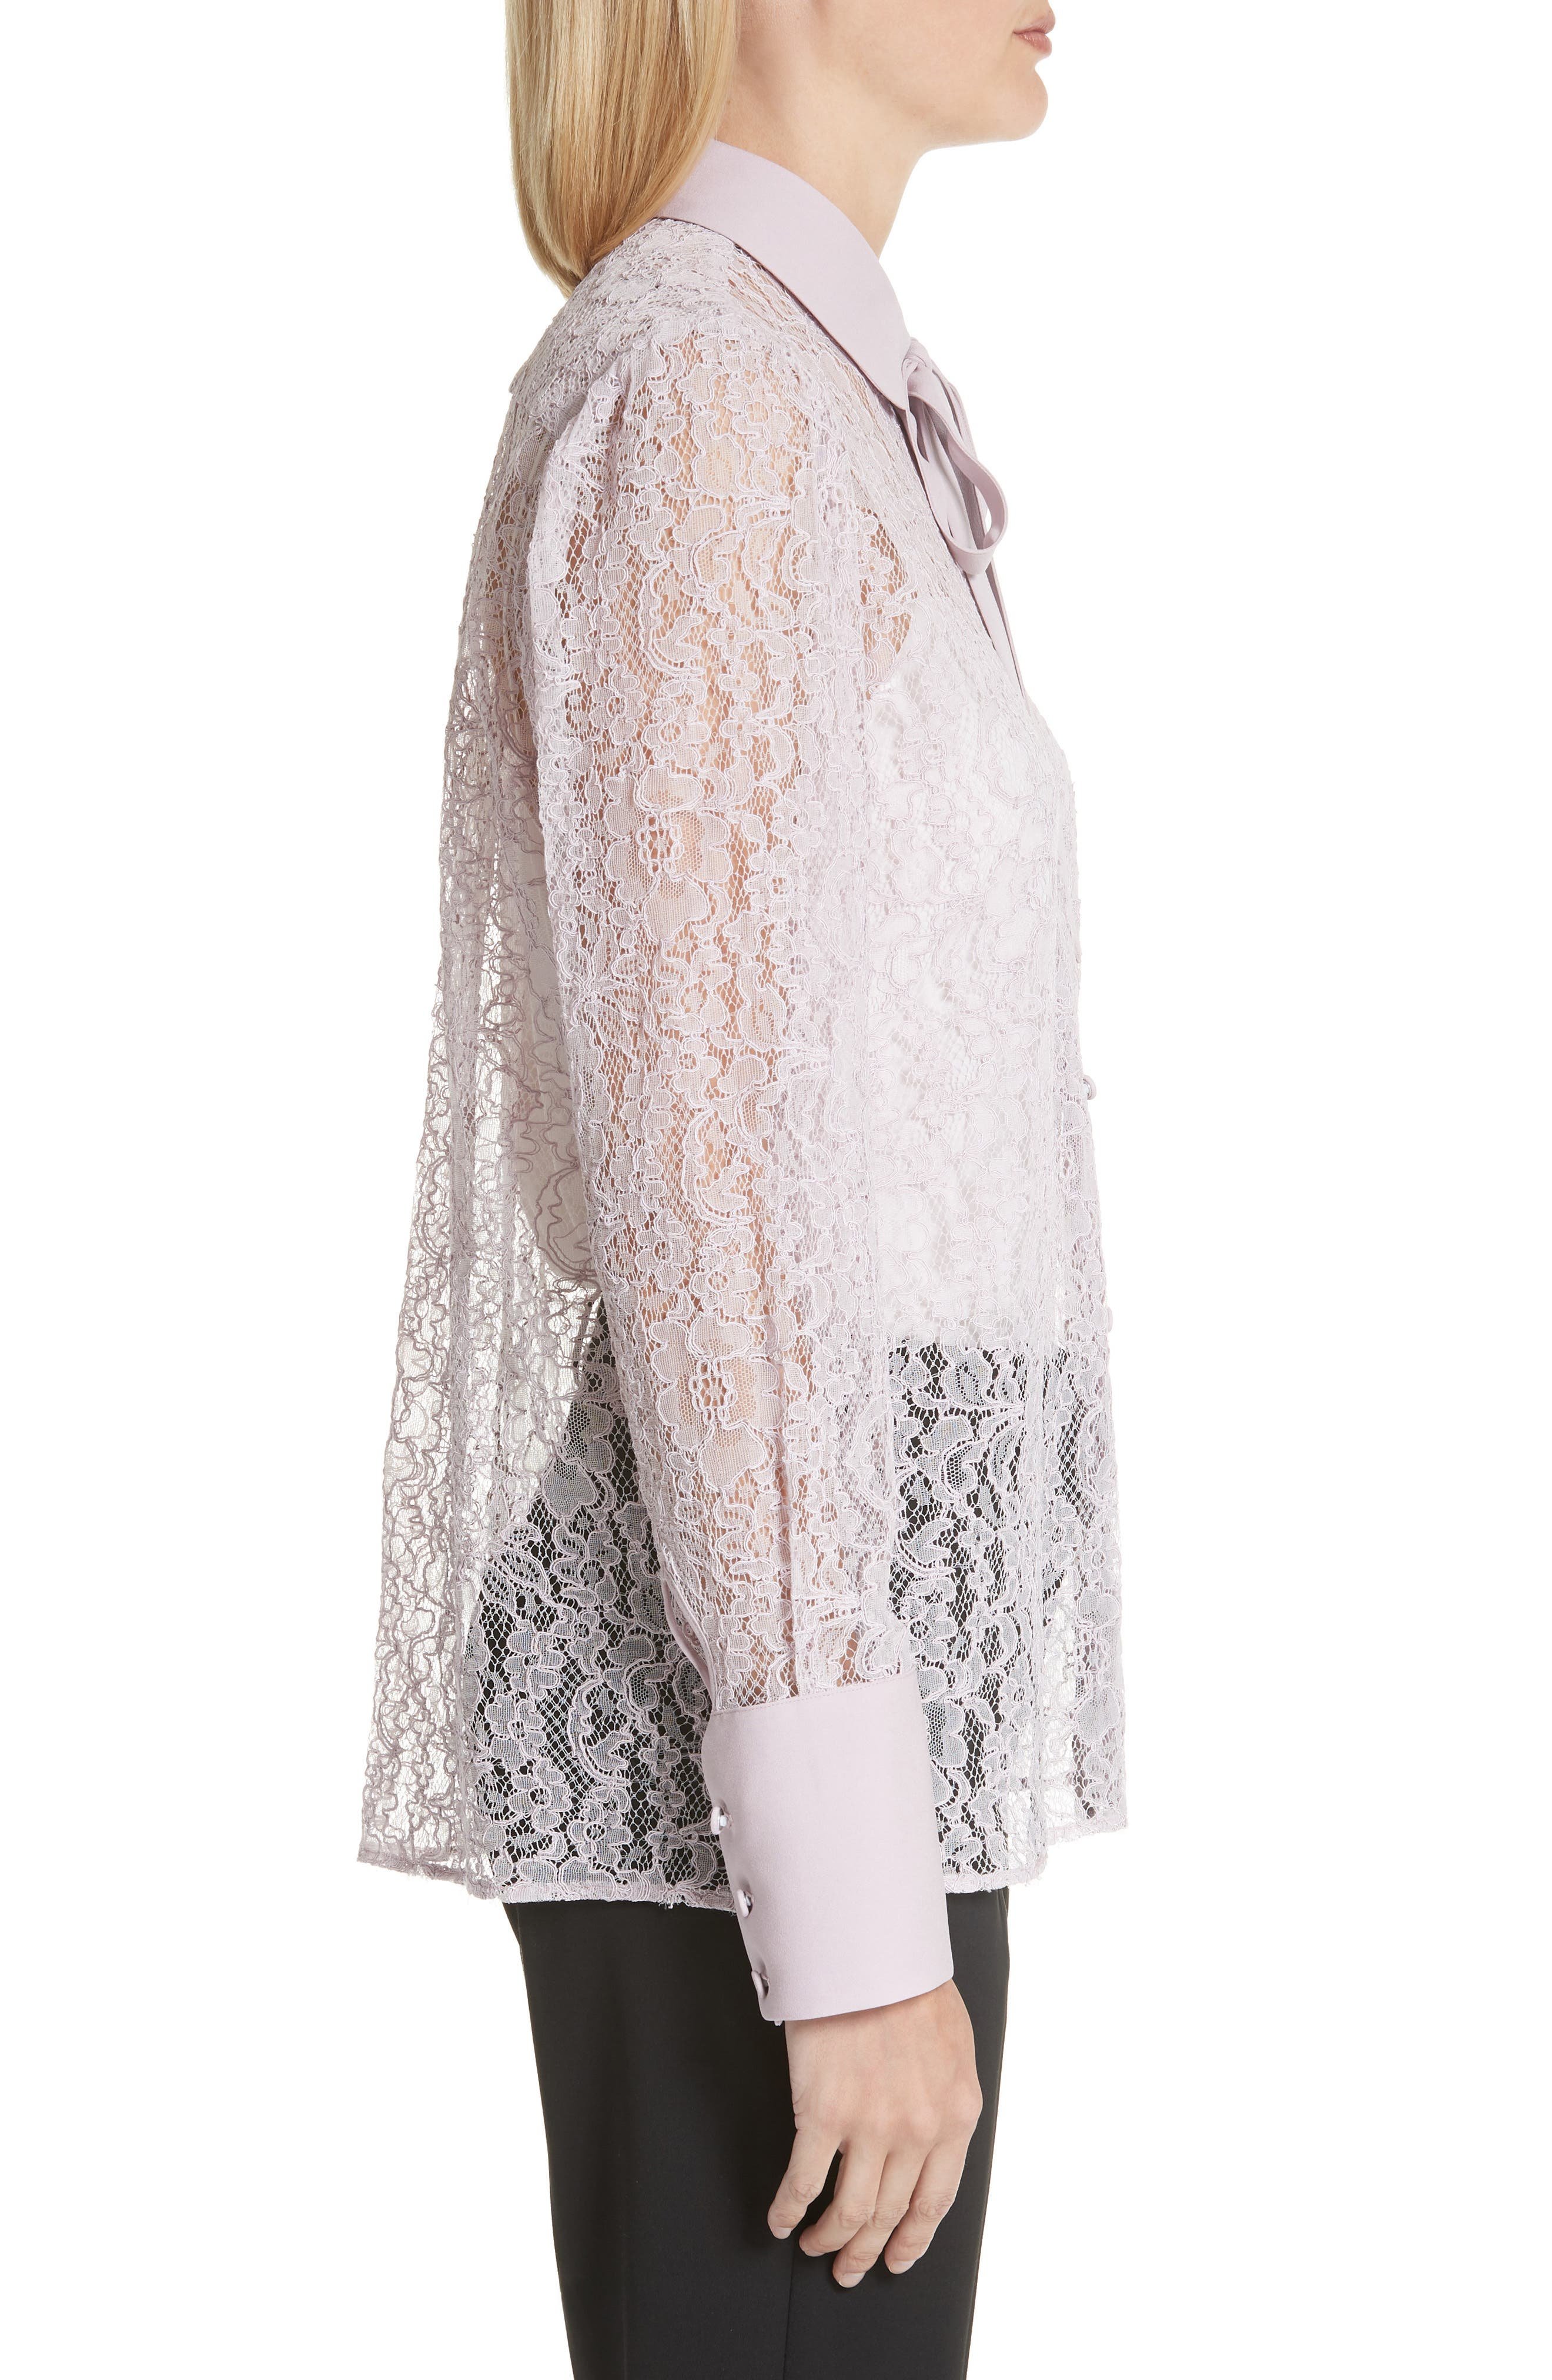 VALENTINO,                             Tie Neck Chantilly Lace Shirt,                             Alternate thumbnail 3, color,                             650